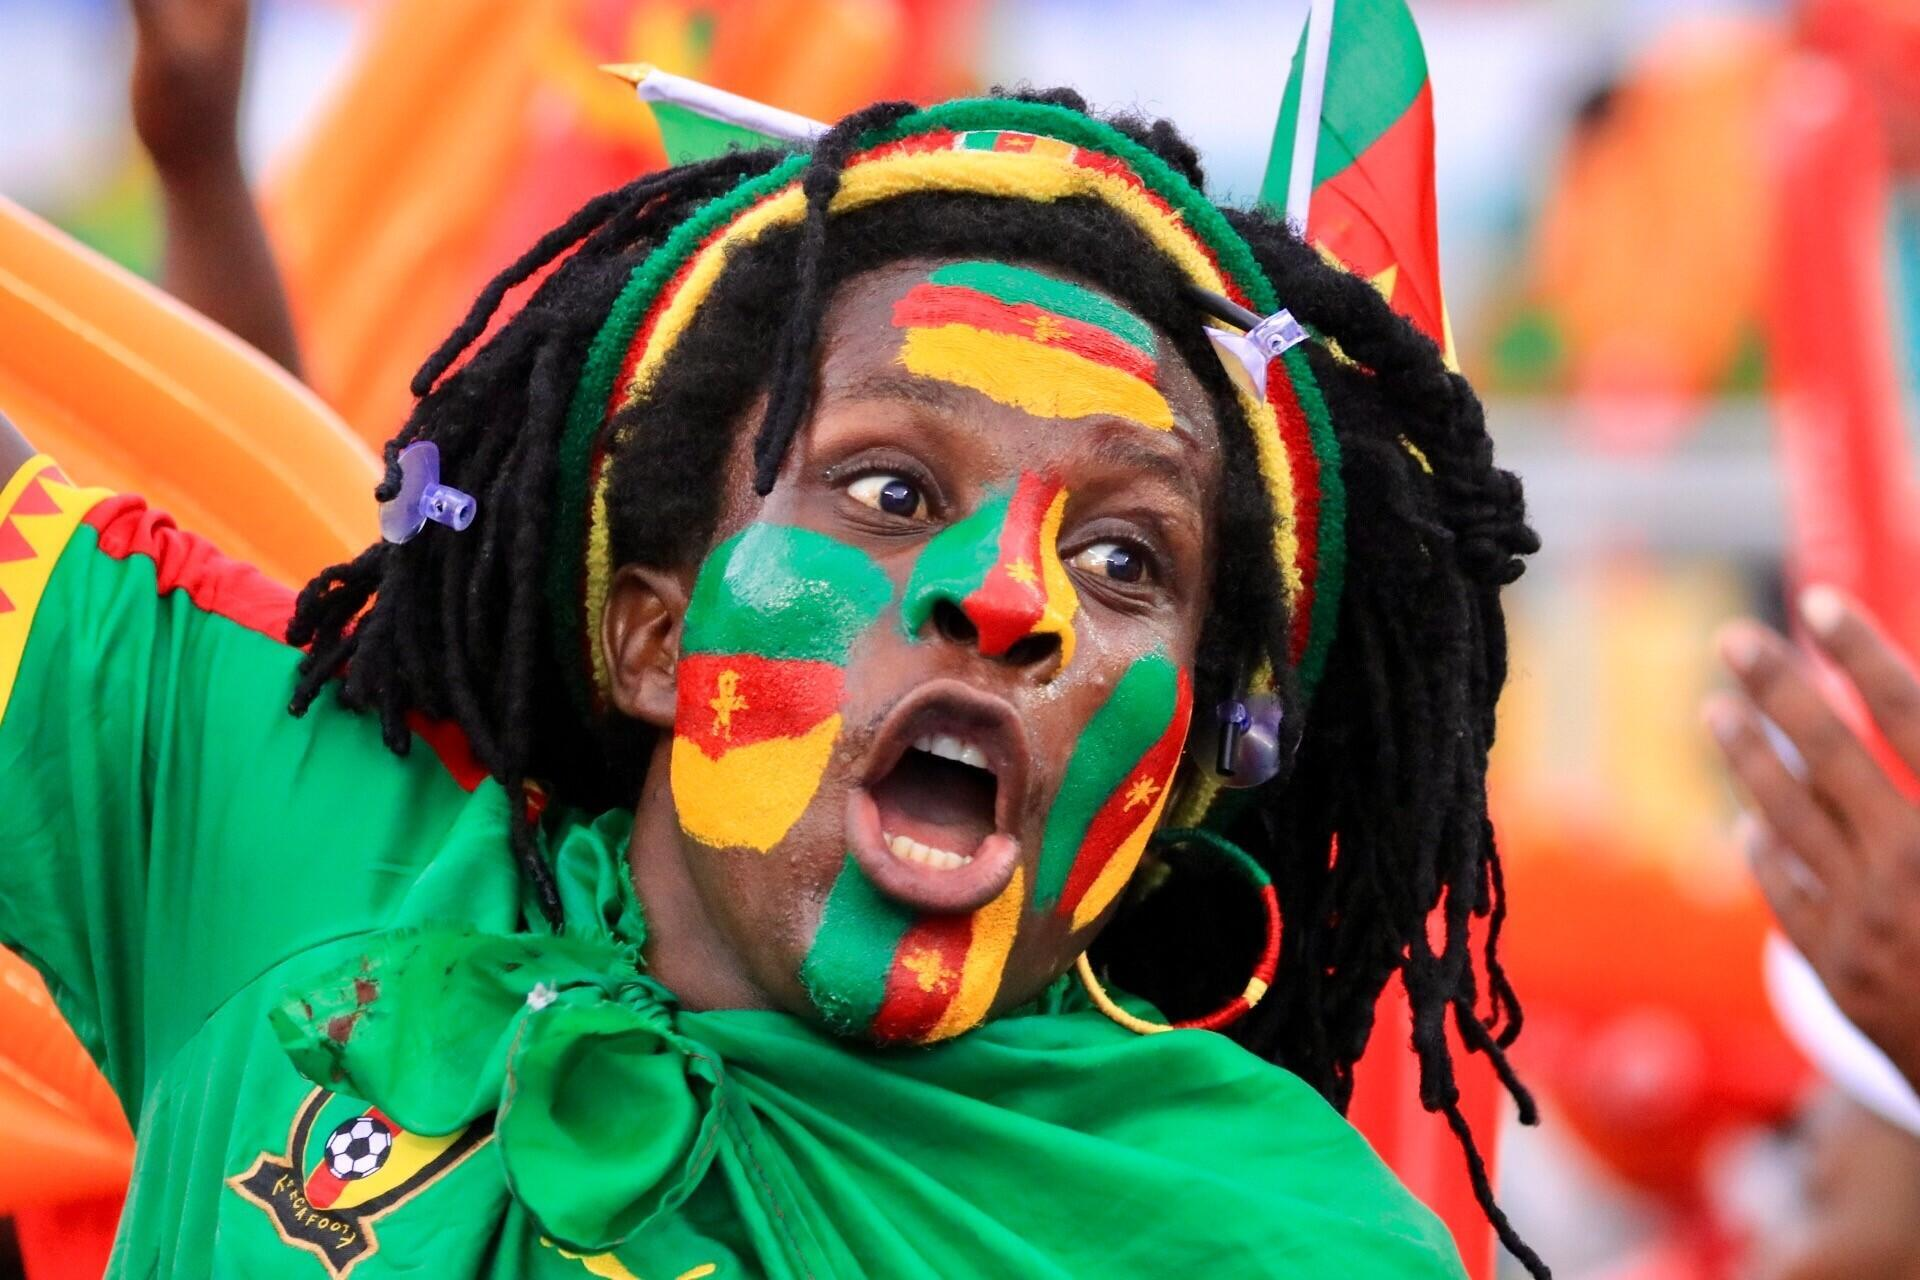 Cameroon fans were singing songs of triumph at the end of the Africa Cup of Nations.